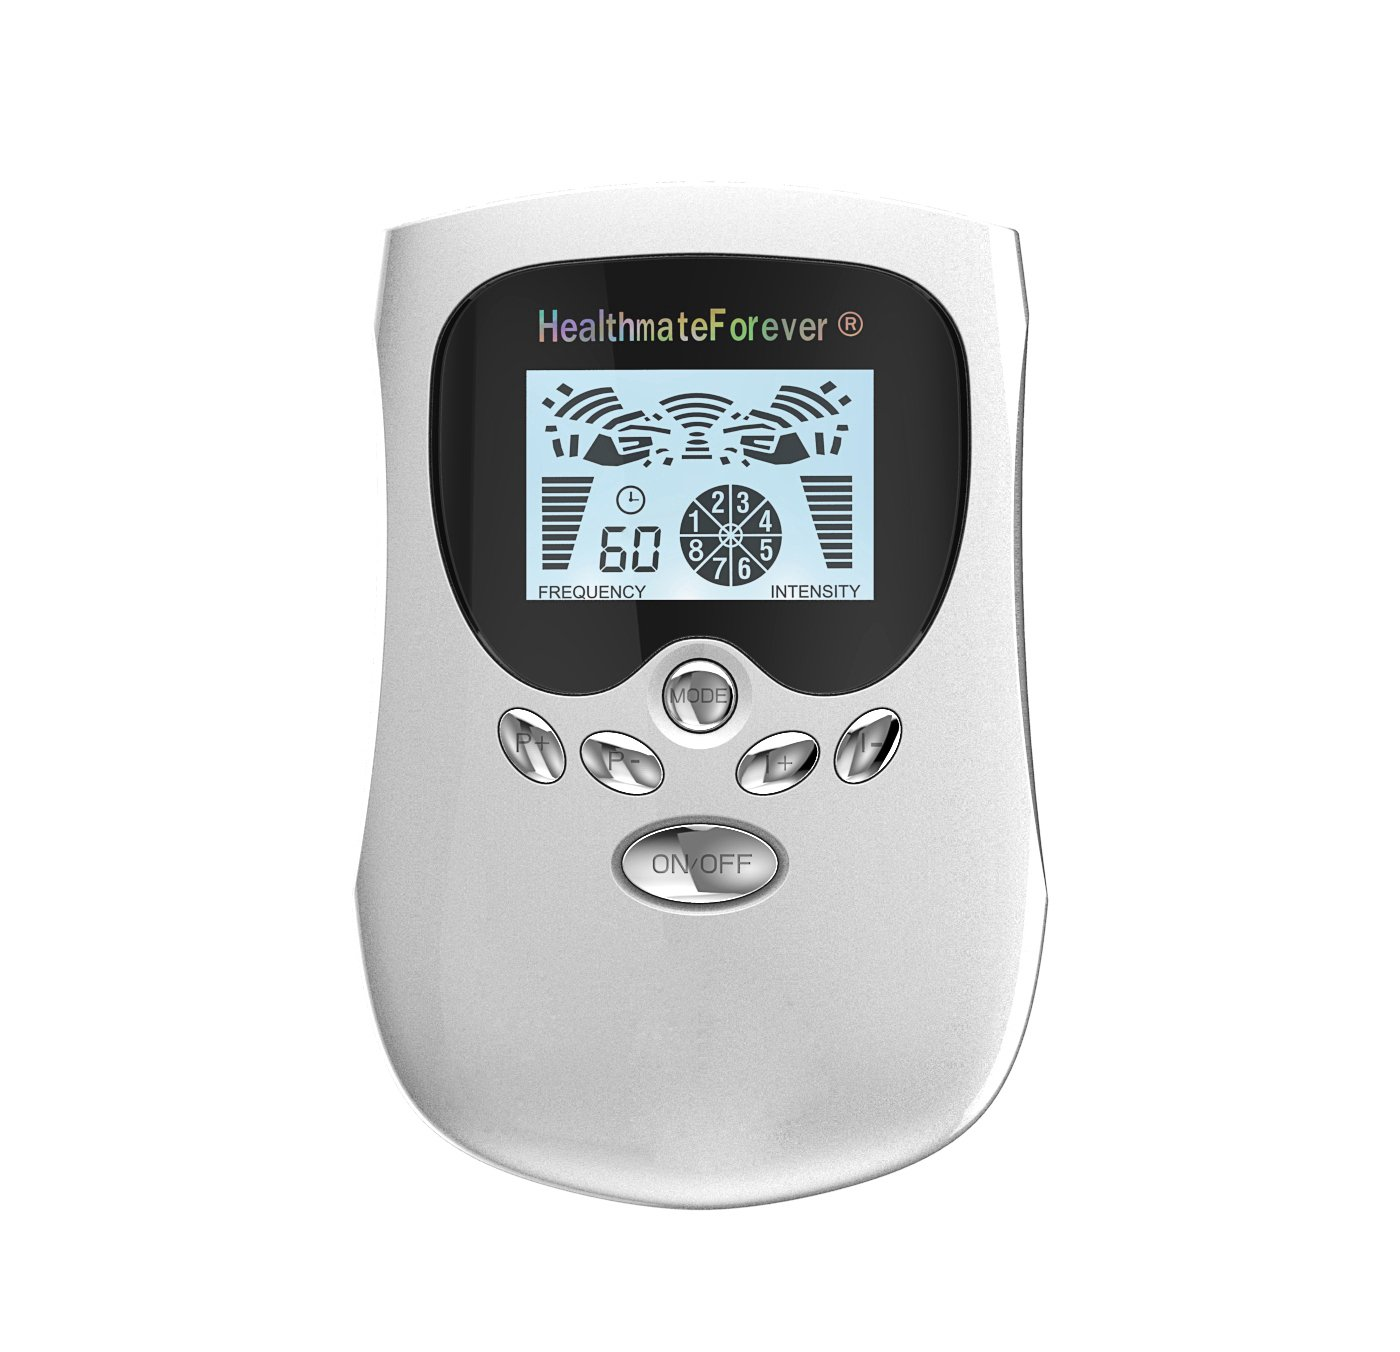 PM8 HealthmateForever TENS Unit Electrical Muscle Stimulator White + 10 Pairs of Pads